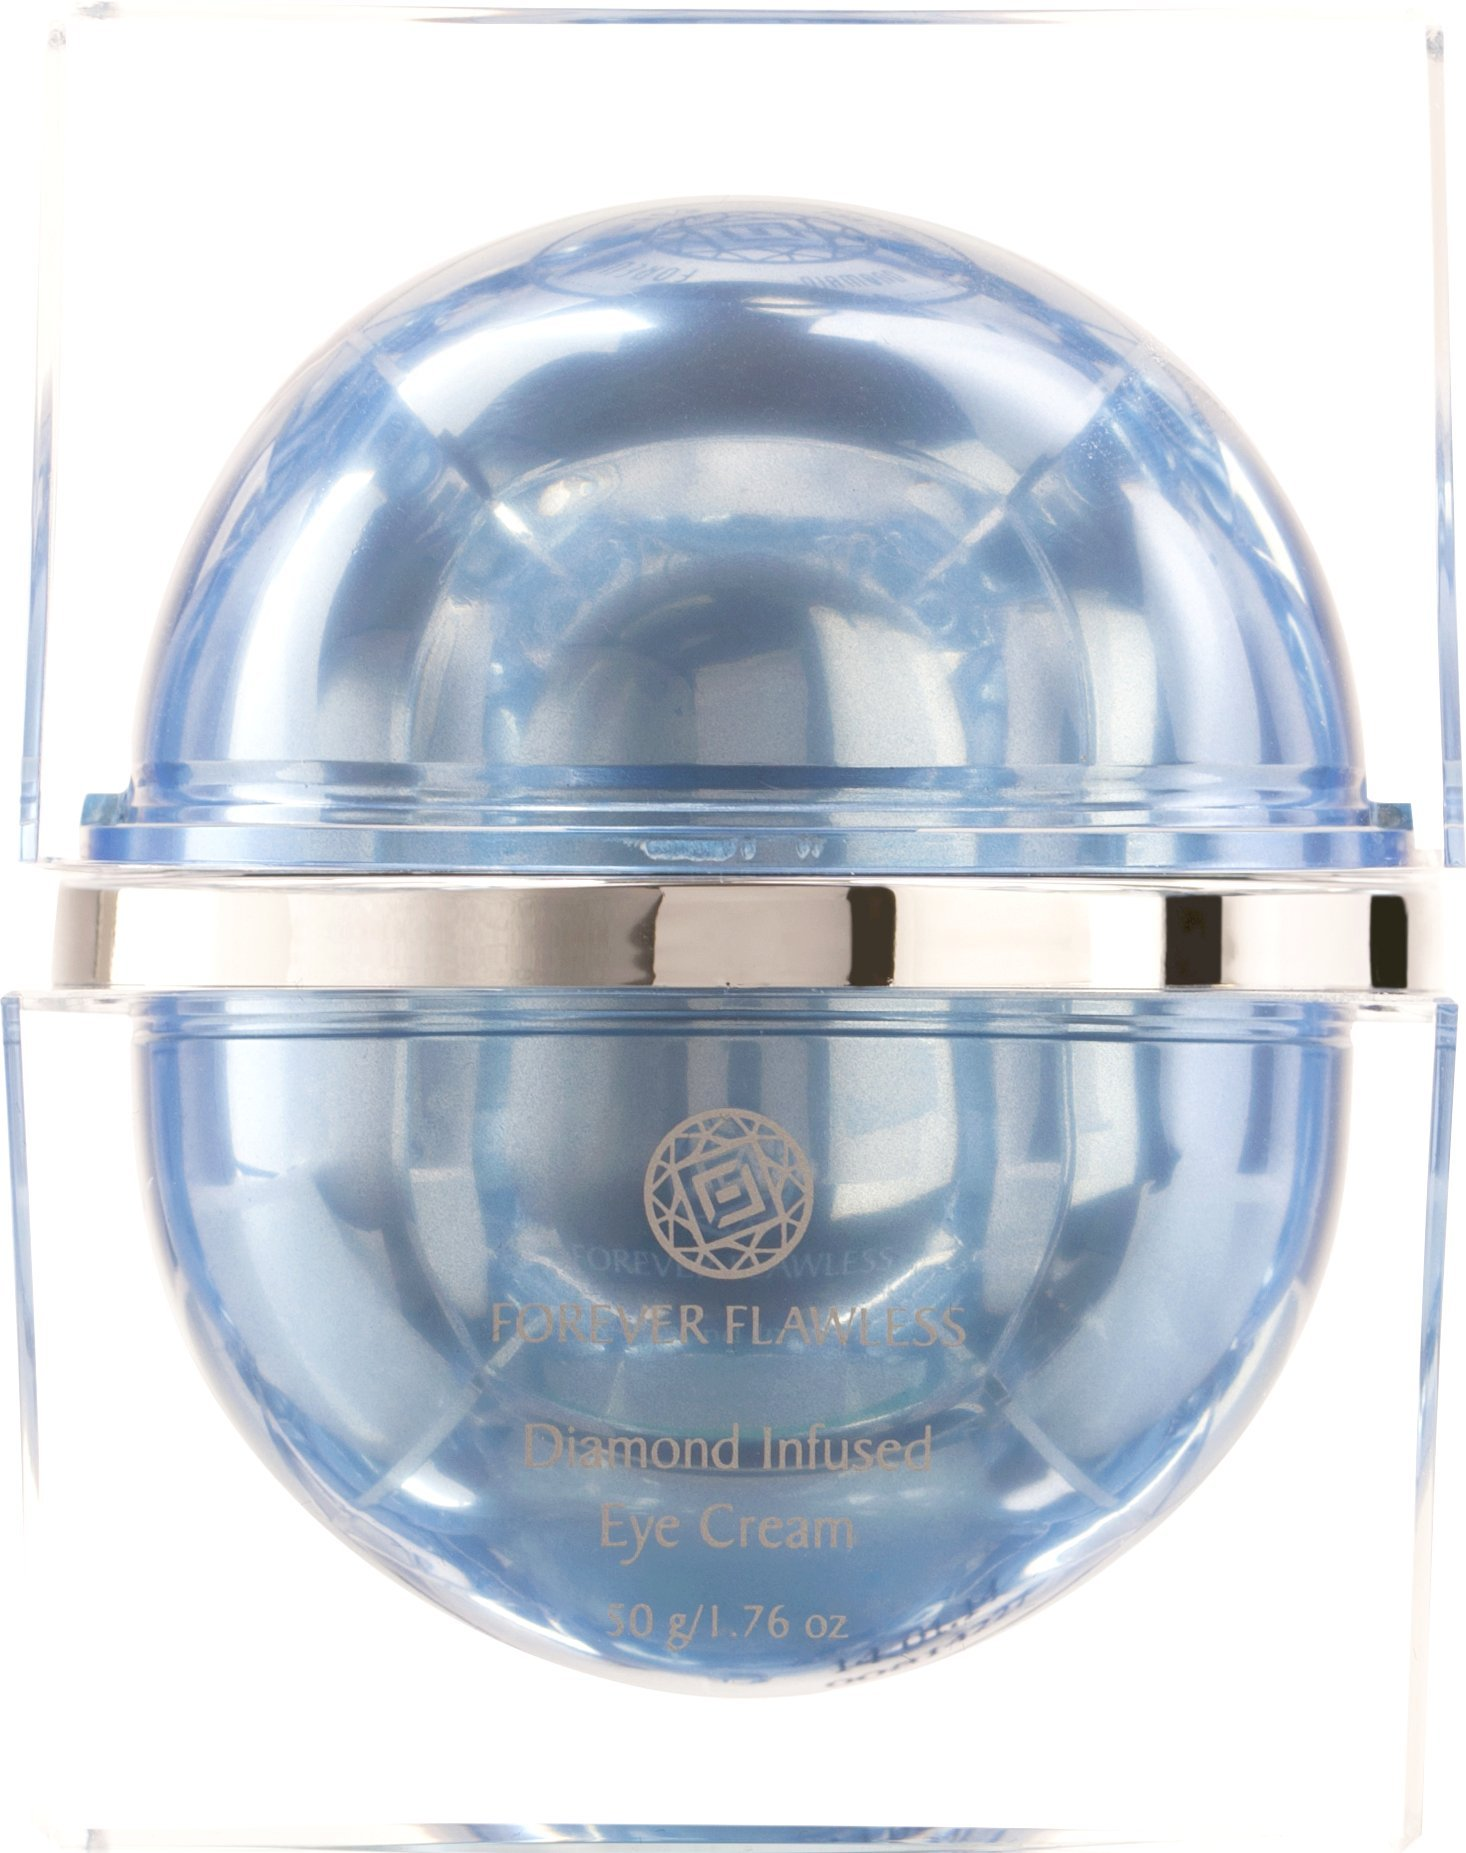 Forever Flawless Anti-Wrinkle + Firming Eye Cream with Blue Diamond Powder, Vitamin C, and Alpha Hydrox for Anti Aging